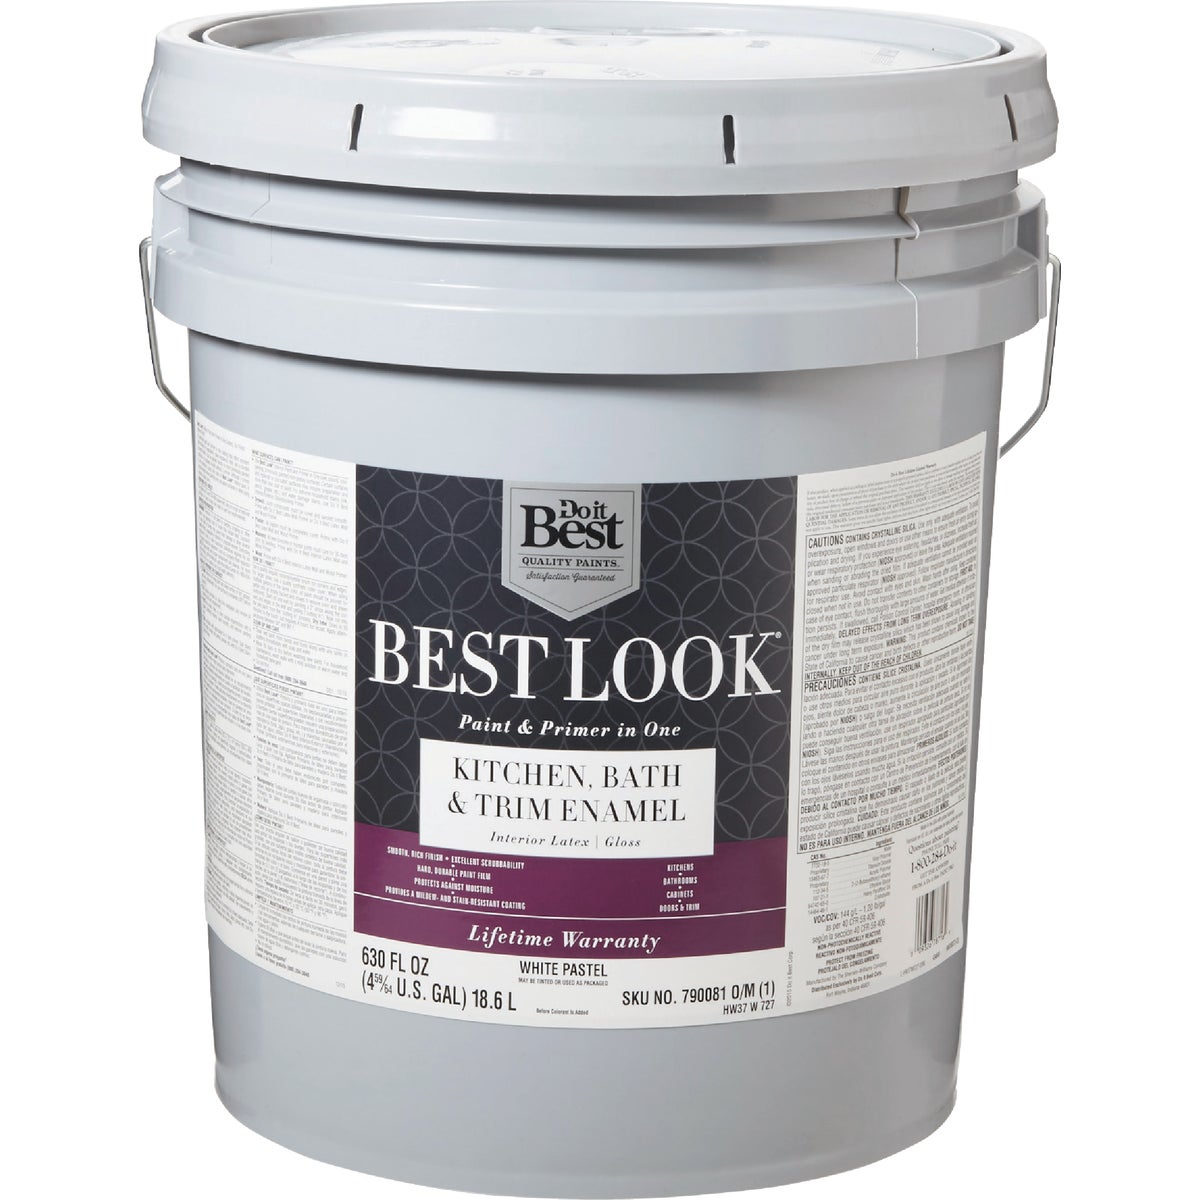 GLS WHT/PASTL BATH PAINT - HW37W0727-20 by Do it Best